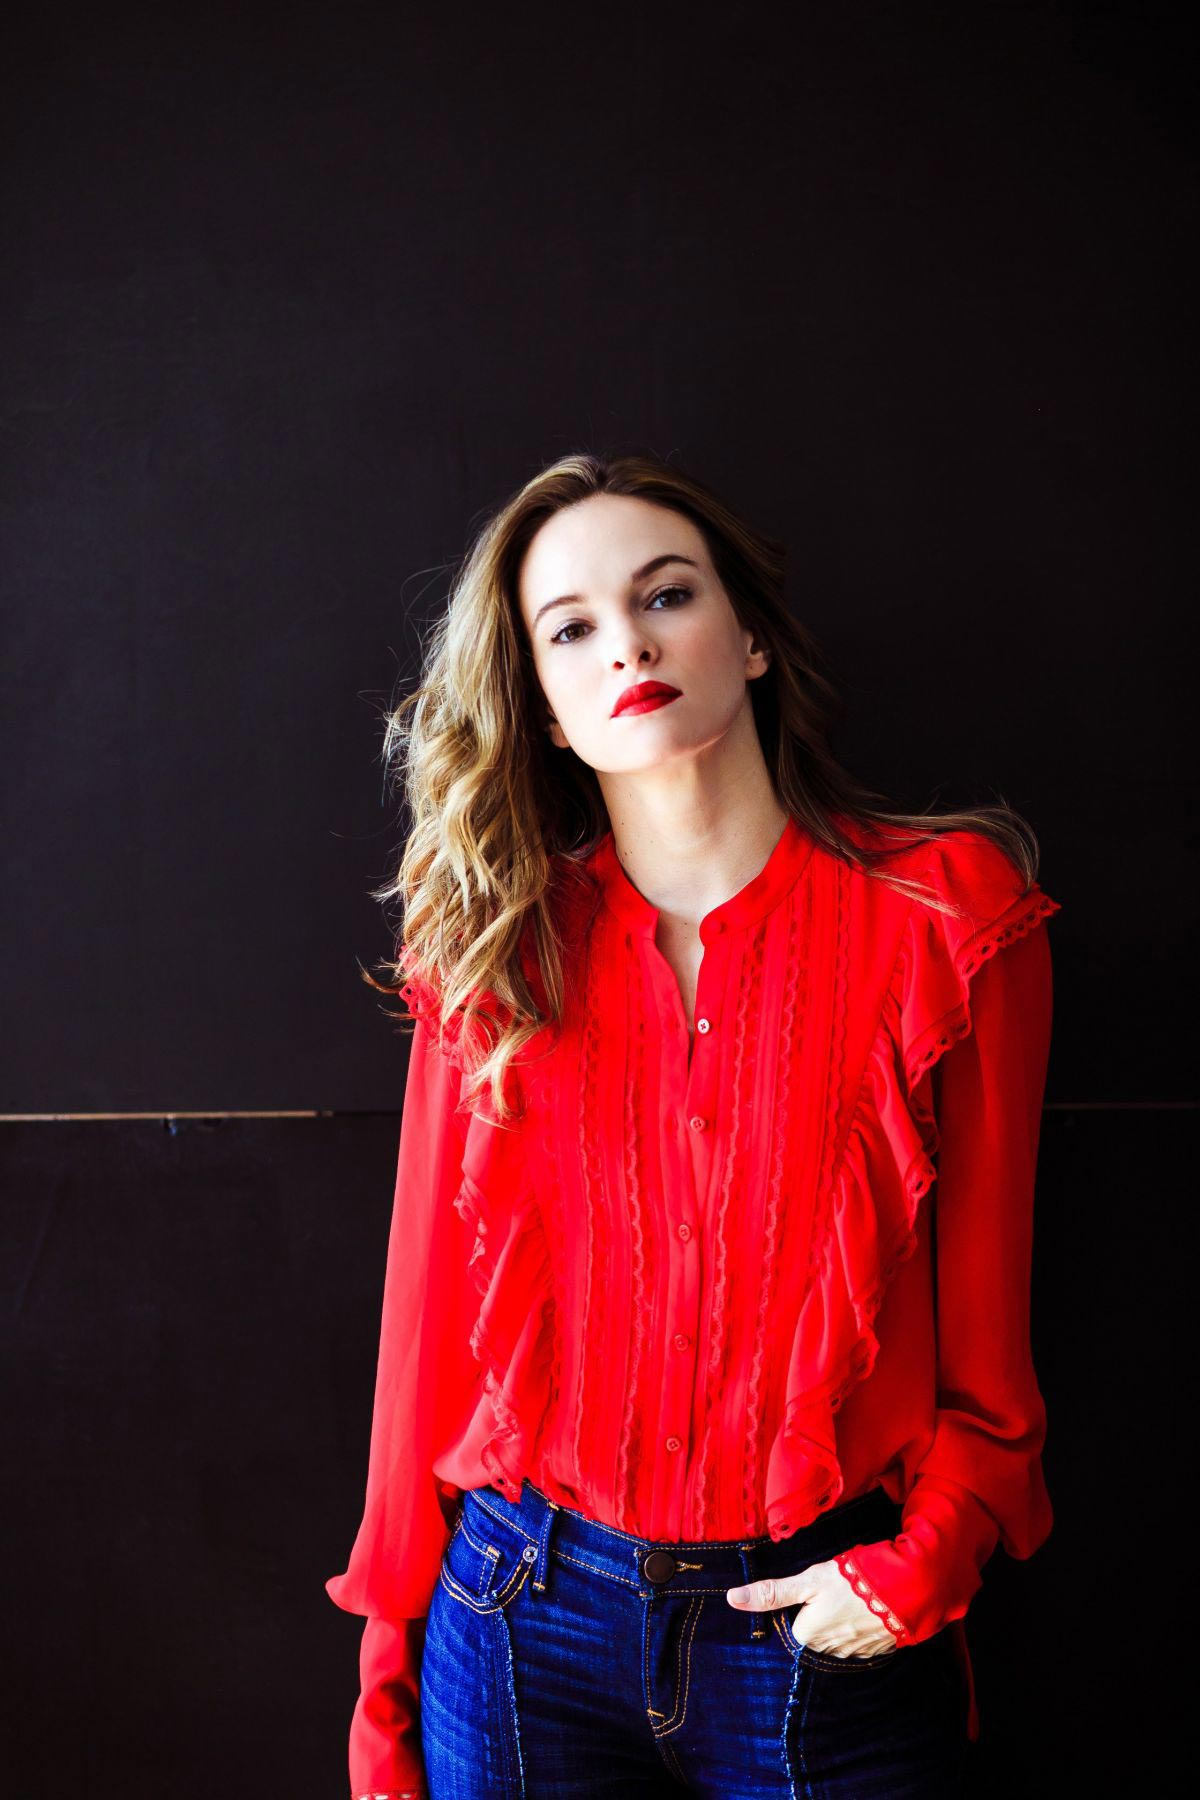 Danielle Panabaker for NKD Magazine, October 2018 Issue 1